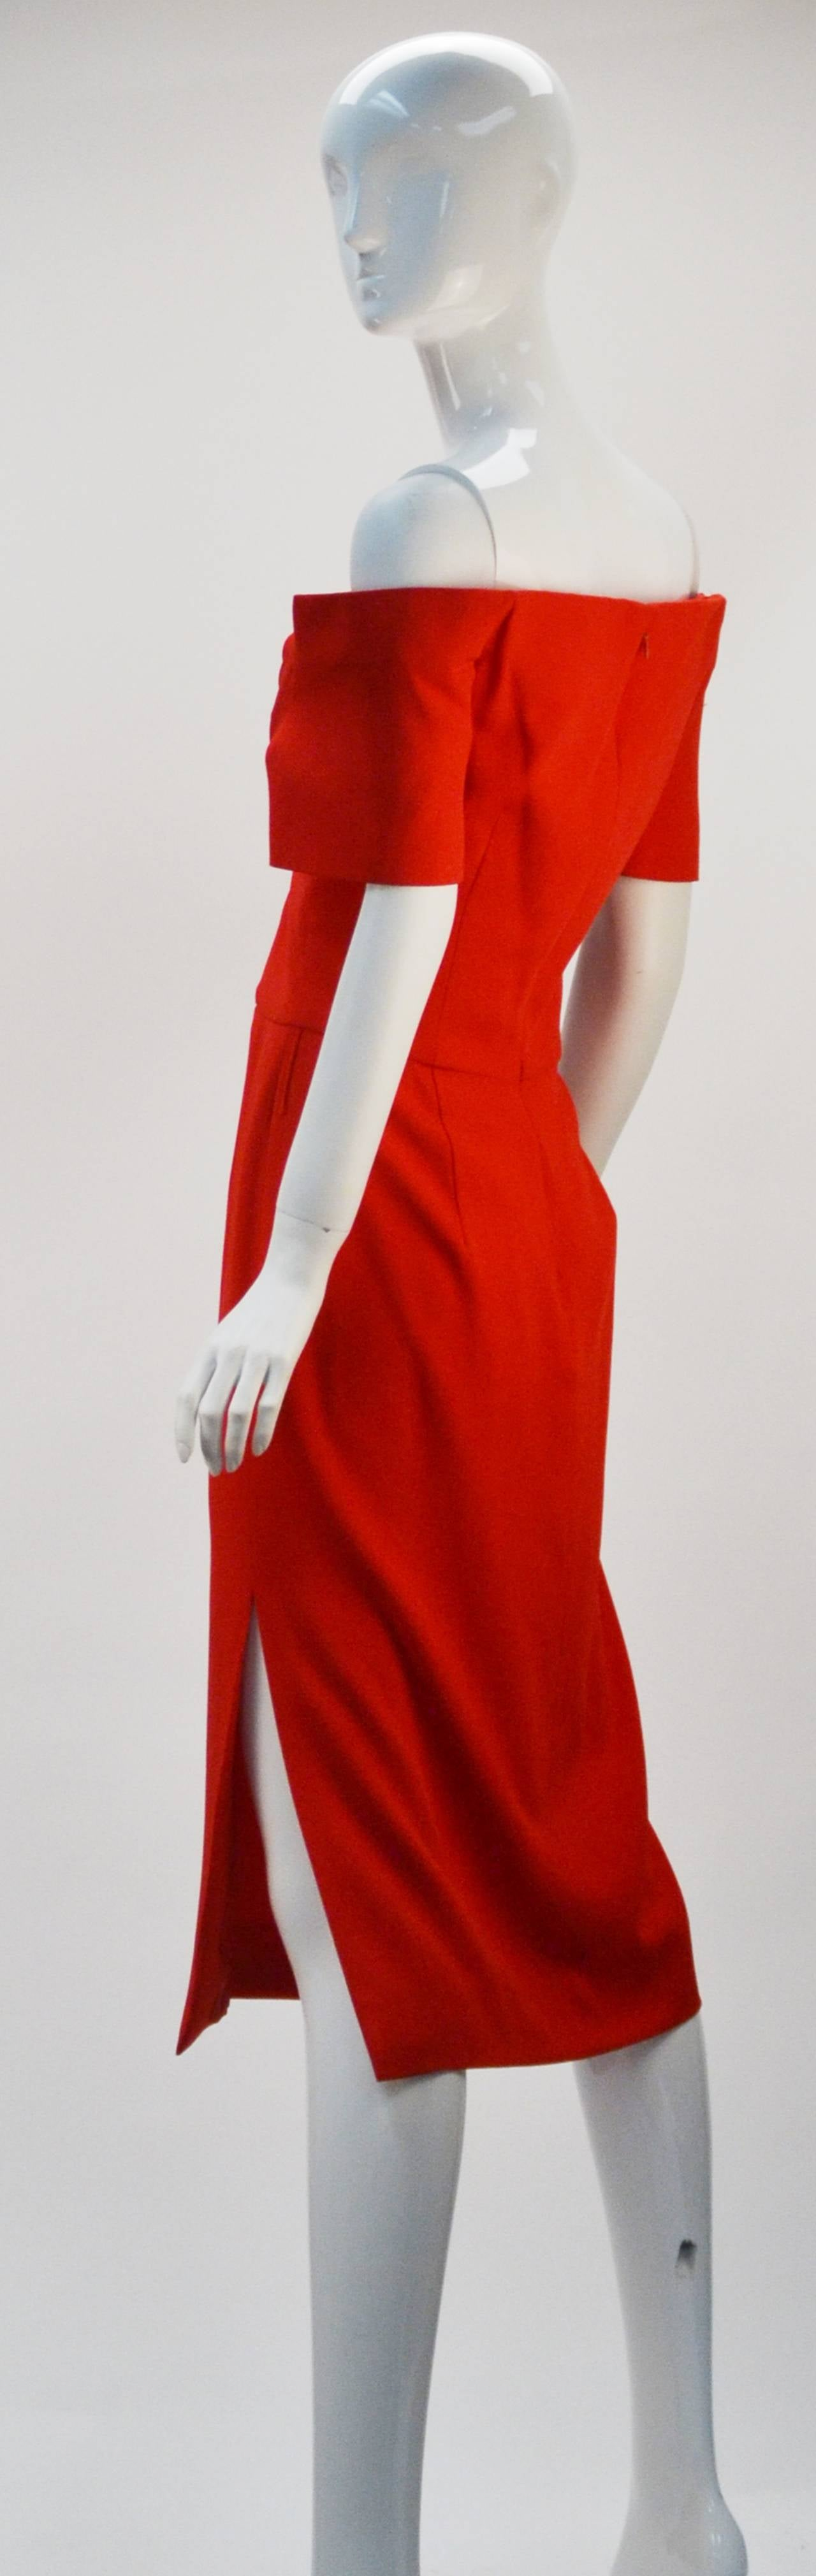 "1980's Scaasi off-shoulder red knee length dress. Elegance in silhouette and in simplicity.  Short sleeves, 13"" side slit and darting at the bust and waist add to the refined silhouette.  Wear with a blazer and pumps for a busy work day and"